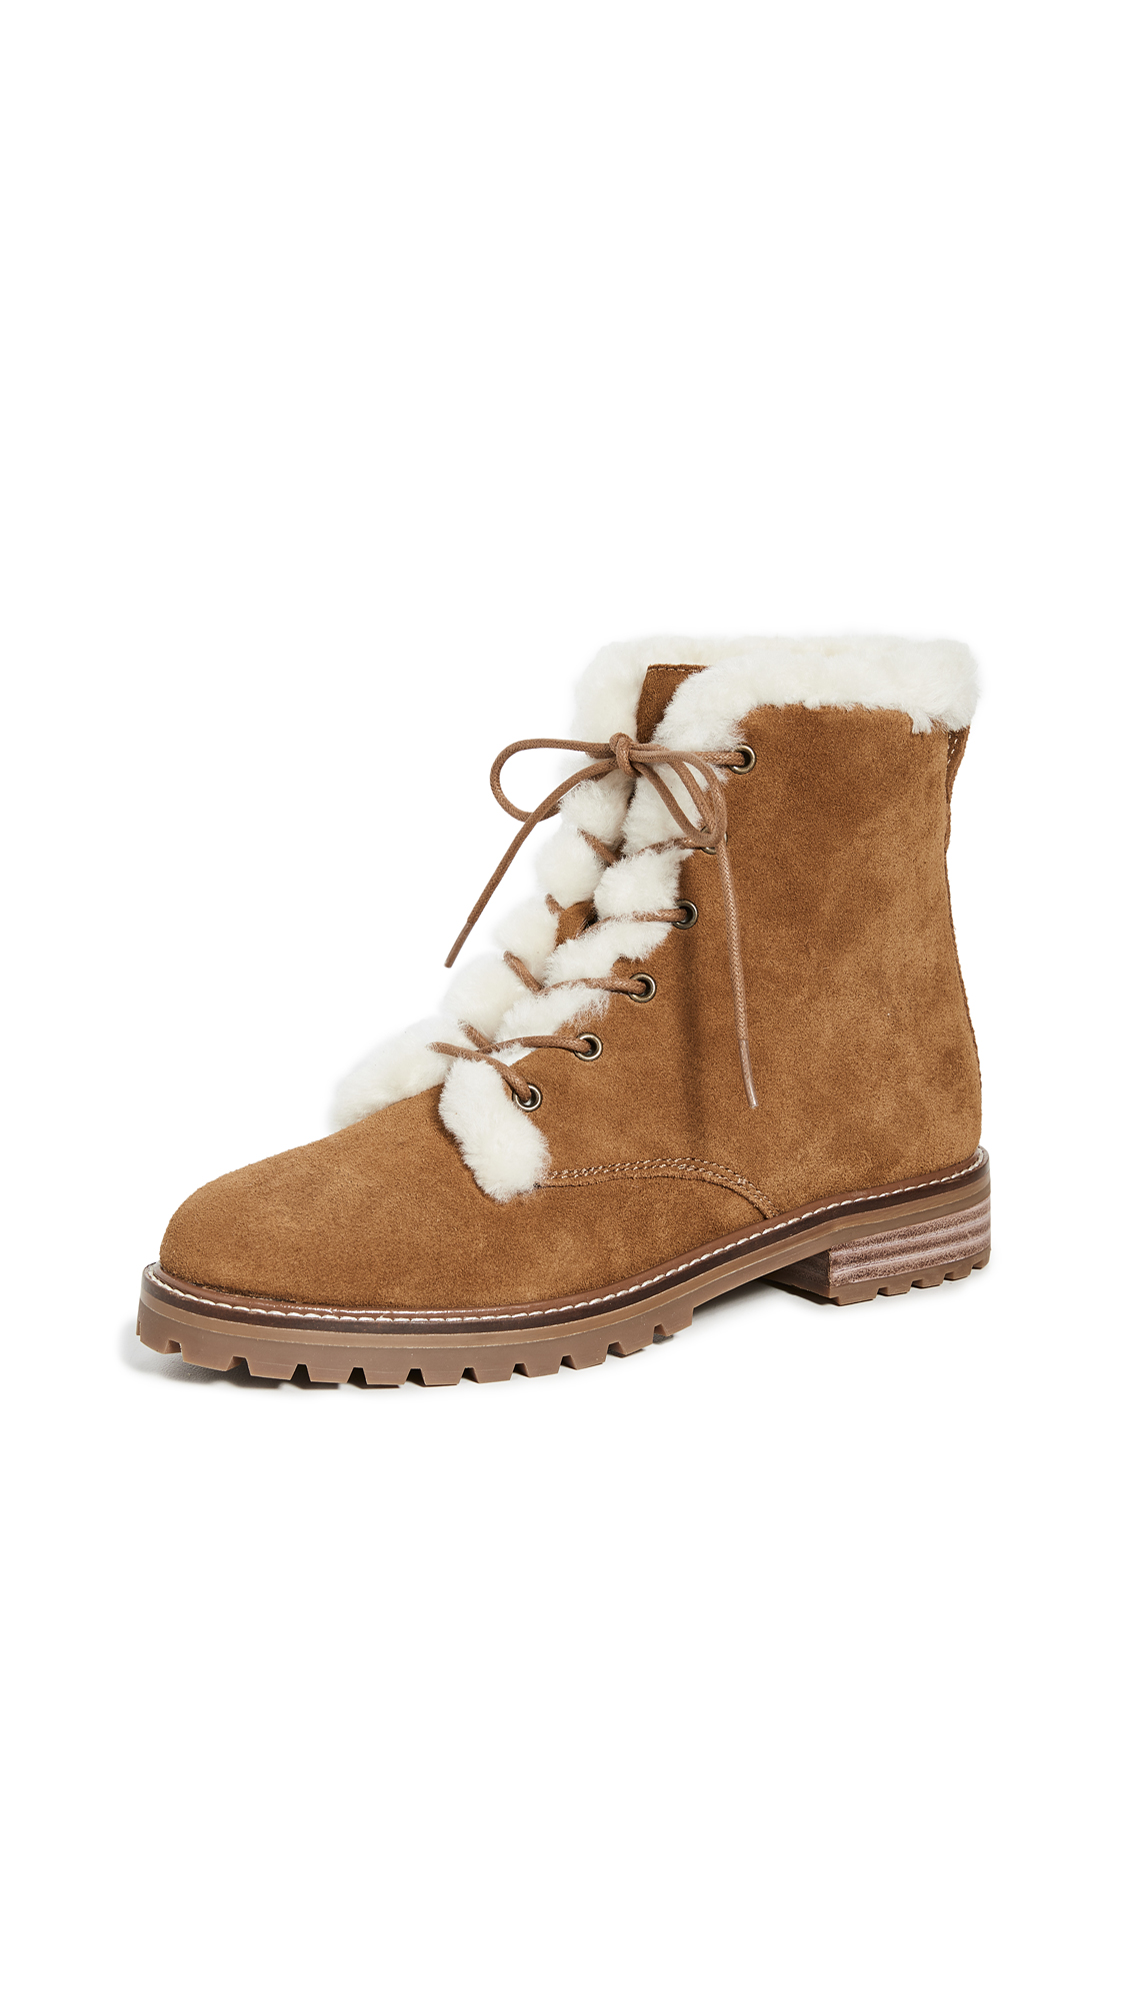 Buy Madewell Levi Lace Up Boots online, shop Madewell